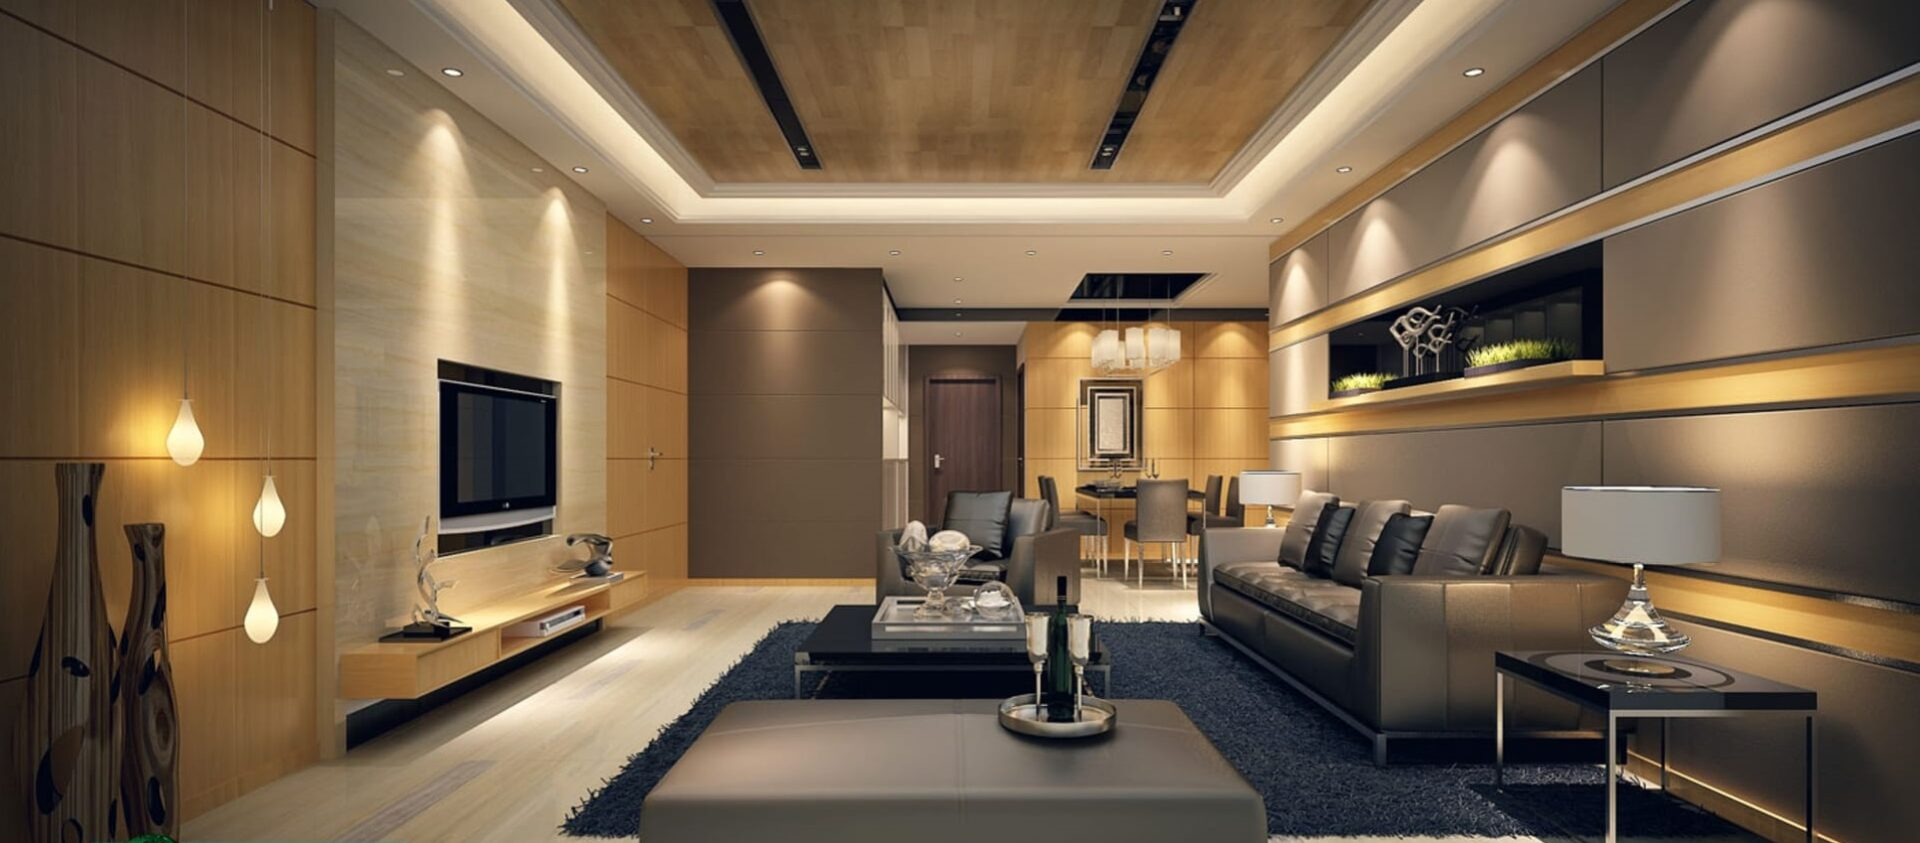 All About Furniture Design